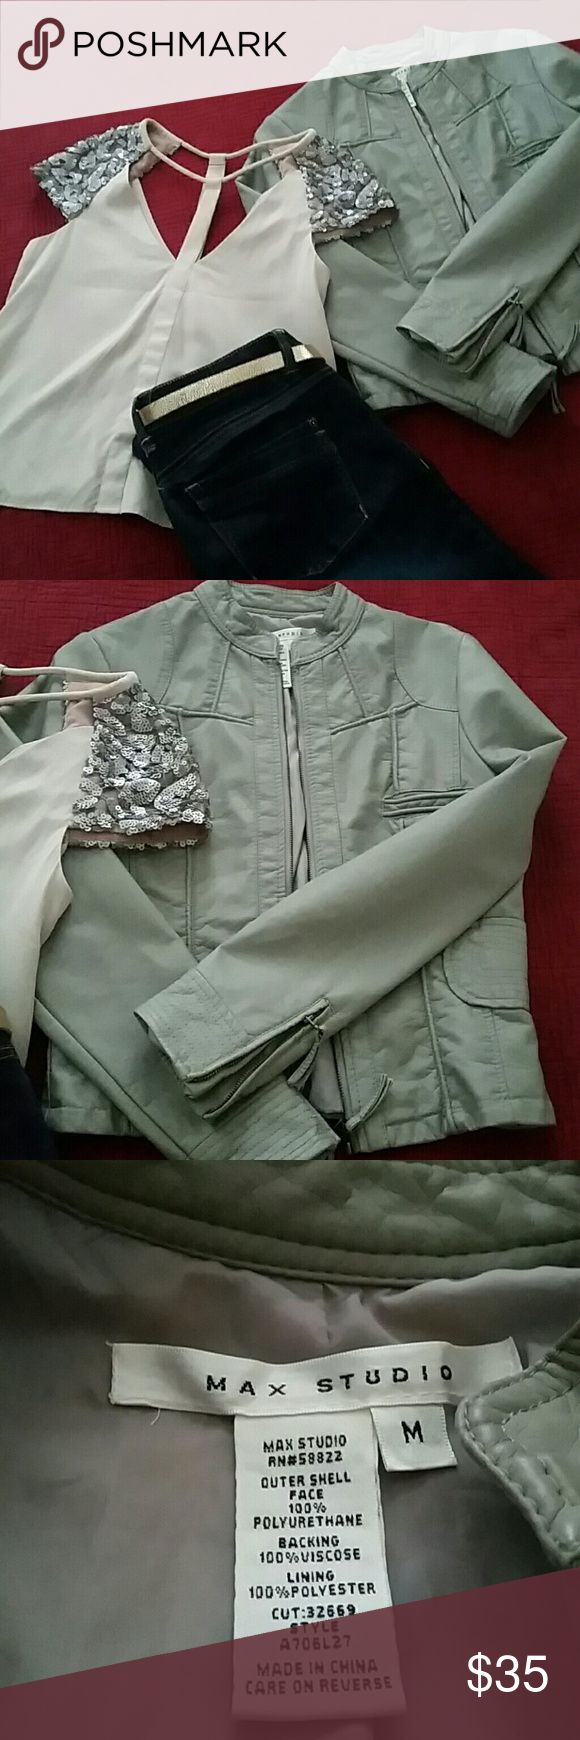 Soft supple faux leather Max Studio moto jacket Shed a tear for me,snif snif. NWOT absaloutly gorgeous taupe gray, details to the max. Zipper closure, zippered sleeves. Waist narrowing details. Love love love. Just a tad to small for me :( Size med Max Studio Jackets & Coats